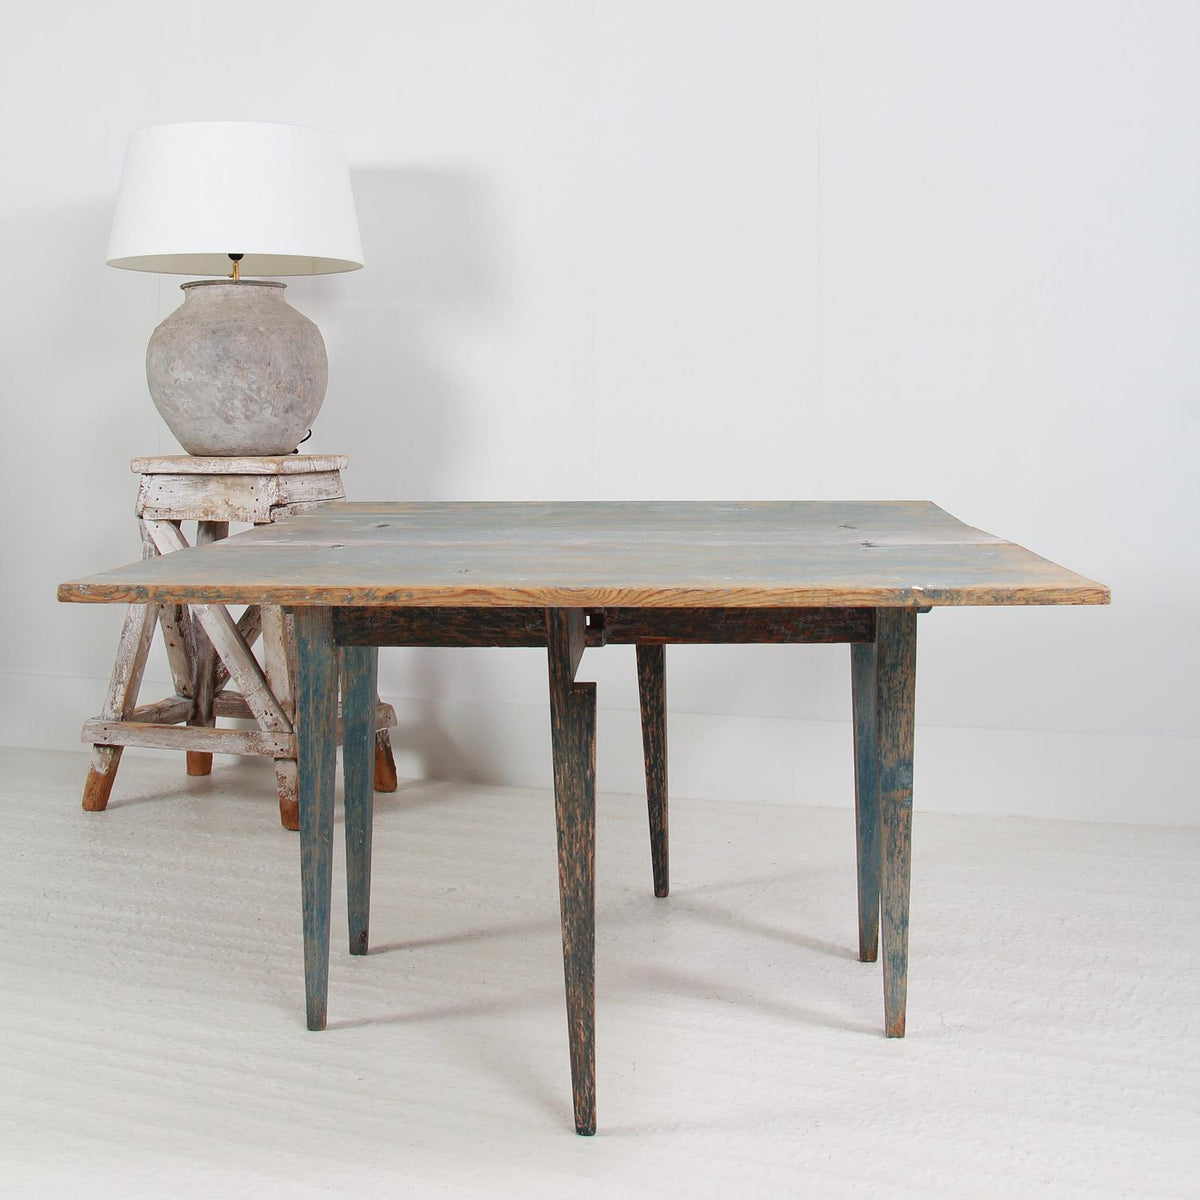 Swedish 19thC Painted Gateleg Drop-Leaf Table with Original Blue Patina